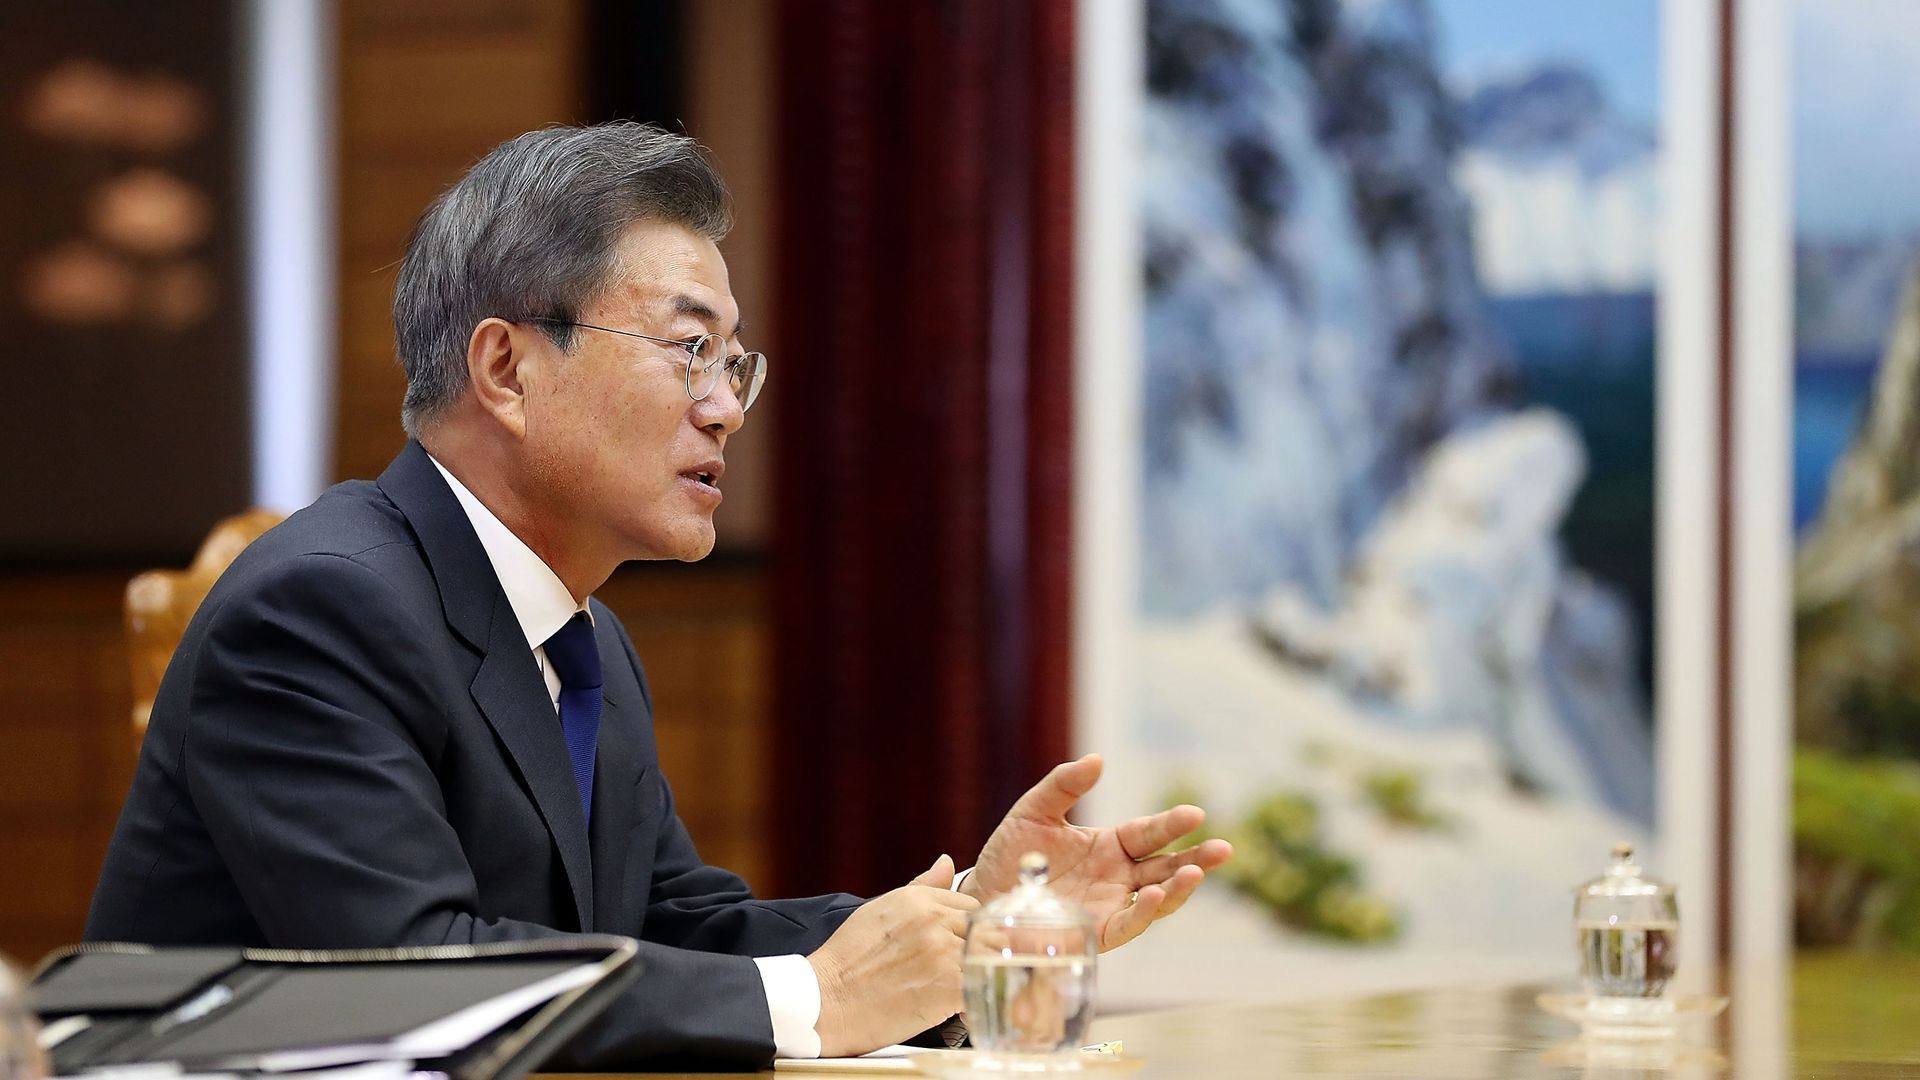 South Korean President Moon Jae-in talks with North Korean leader Kim Jong-un (not pictured).